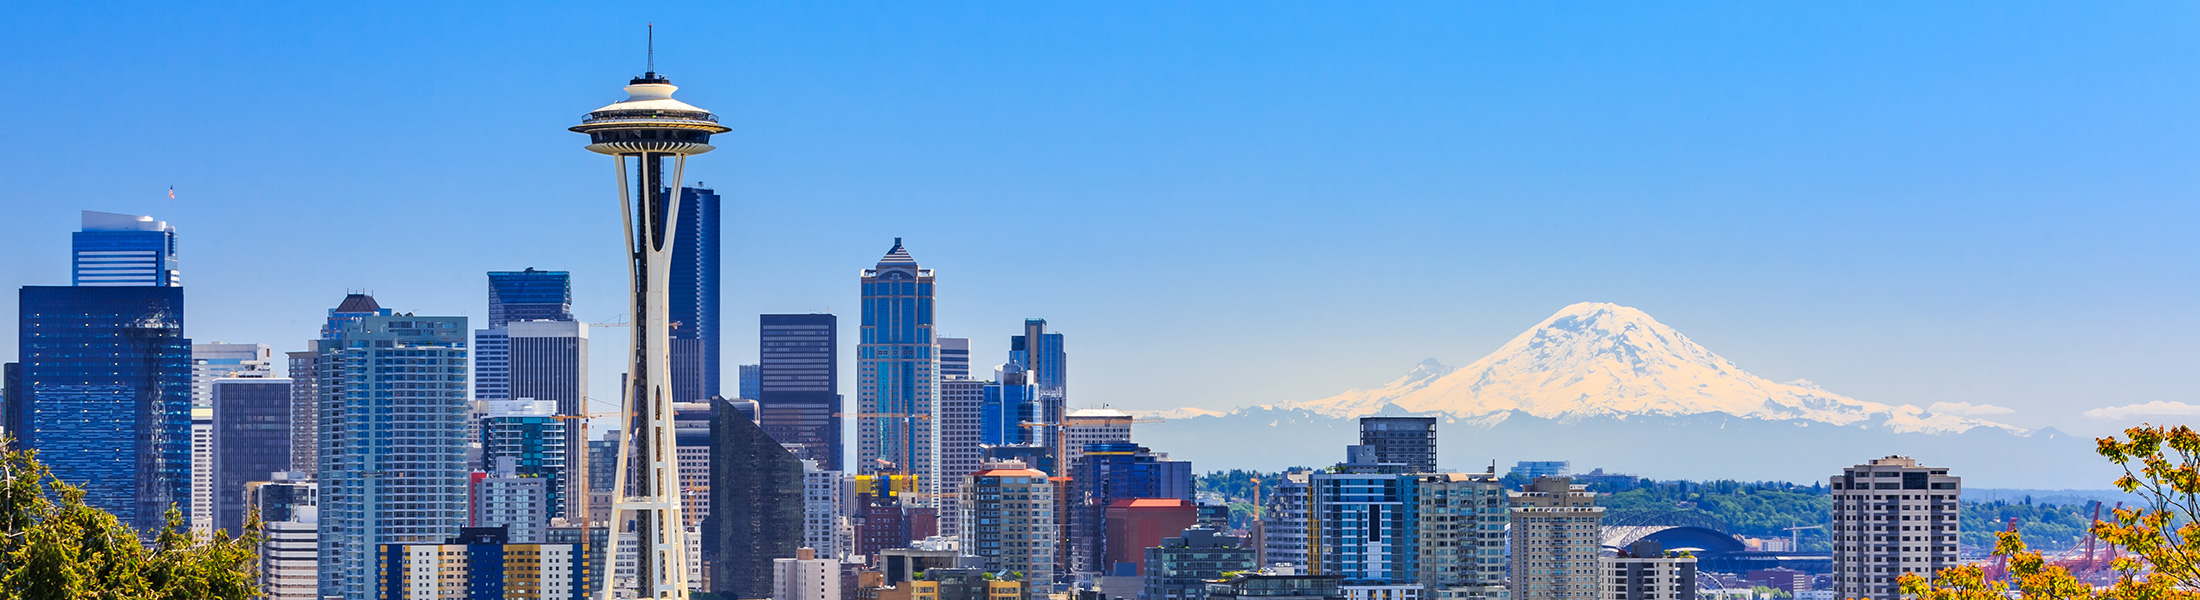 Seattle City Skyline in North America